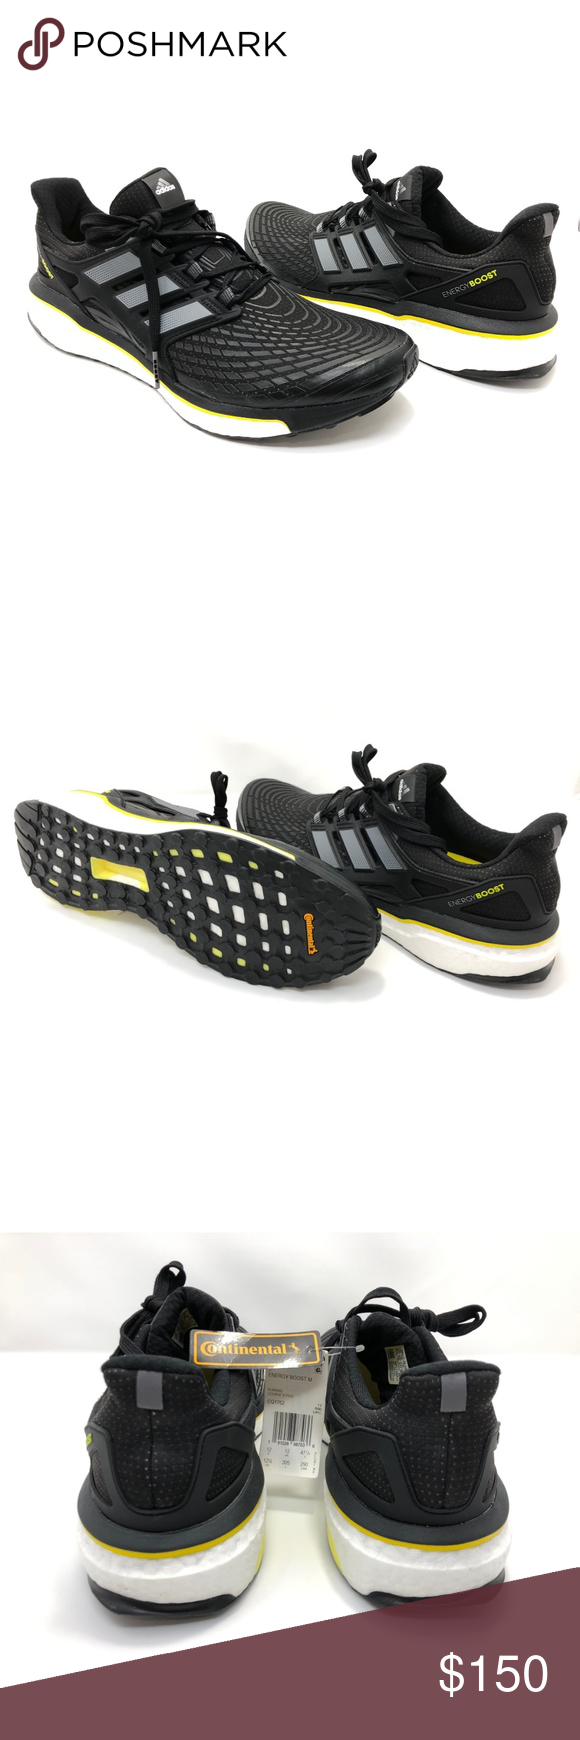 buy online 48f94 dae3f Adidas Energy Boost Mens Training Running Shoes ADIDAS CQ1762 Adidas  Energy Boost Mens running shoes Size 12.5 BlackWhite Low top New without  box 55A927 ...